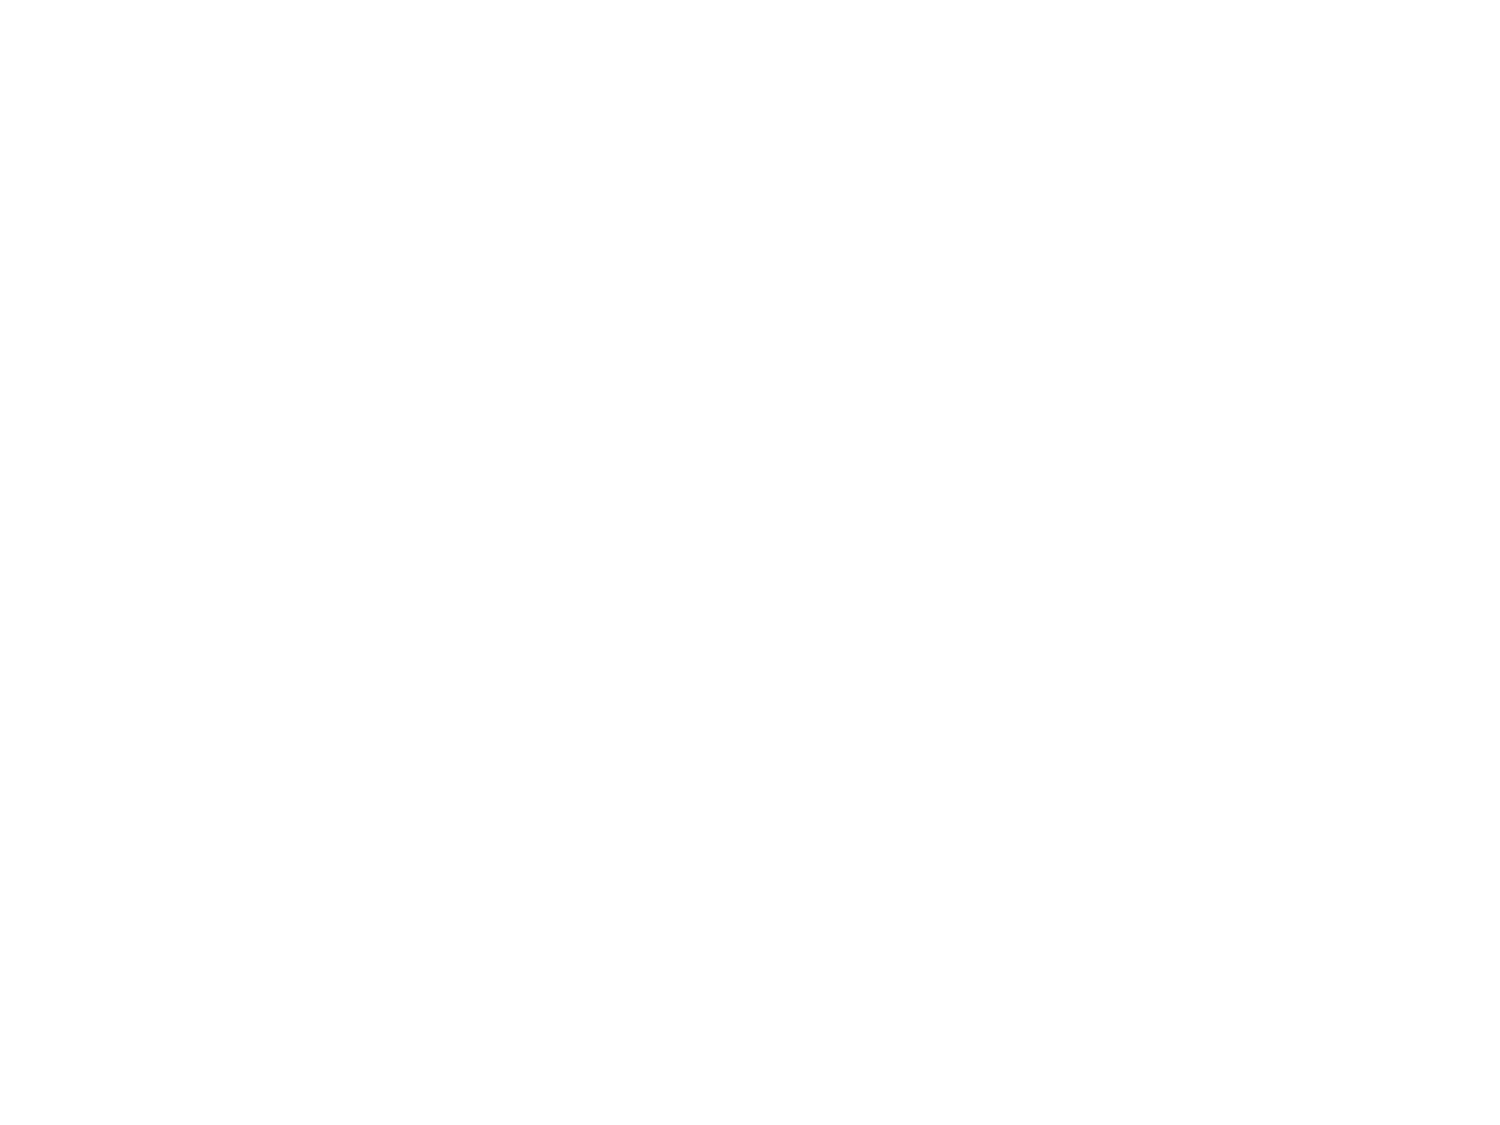 Cross Culture Church